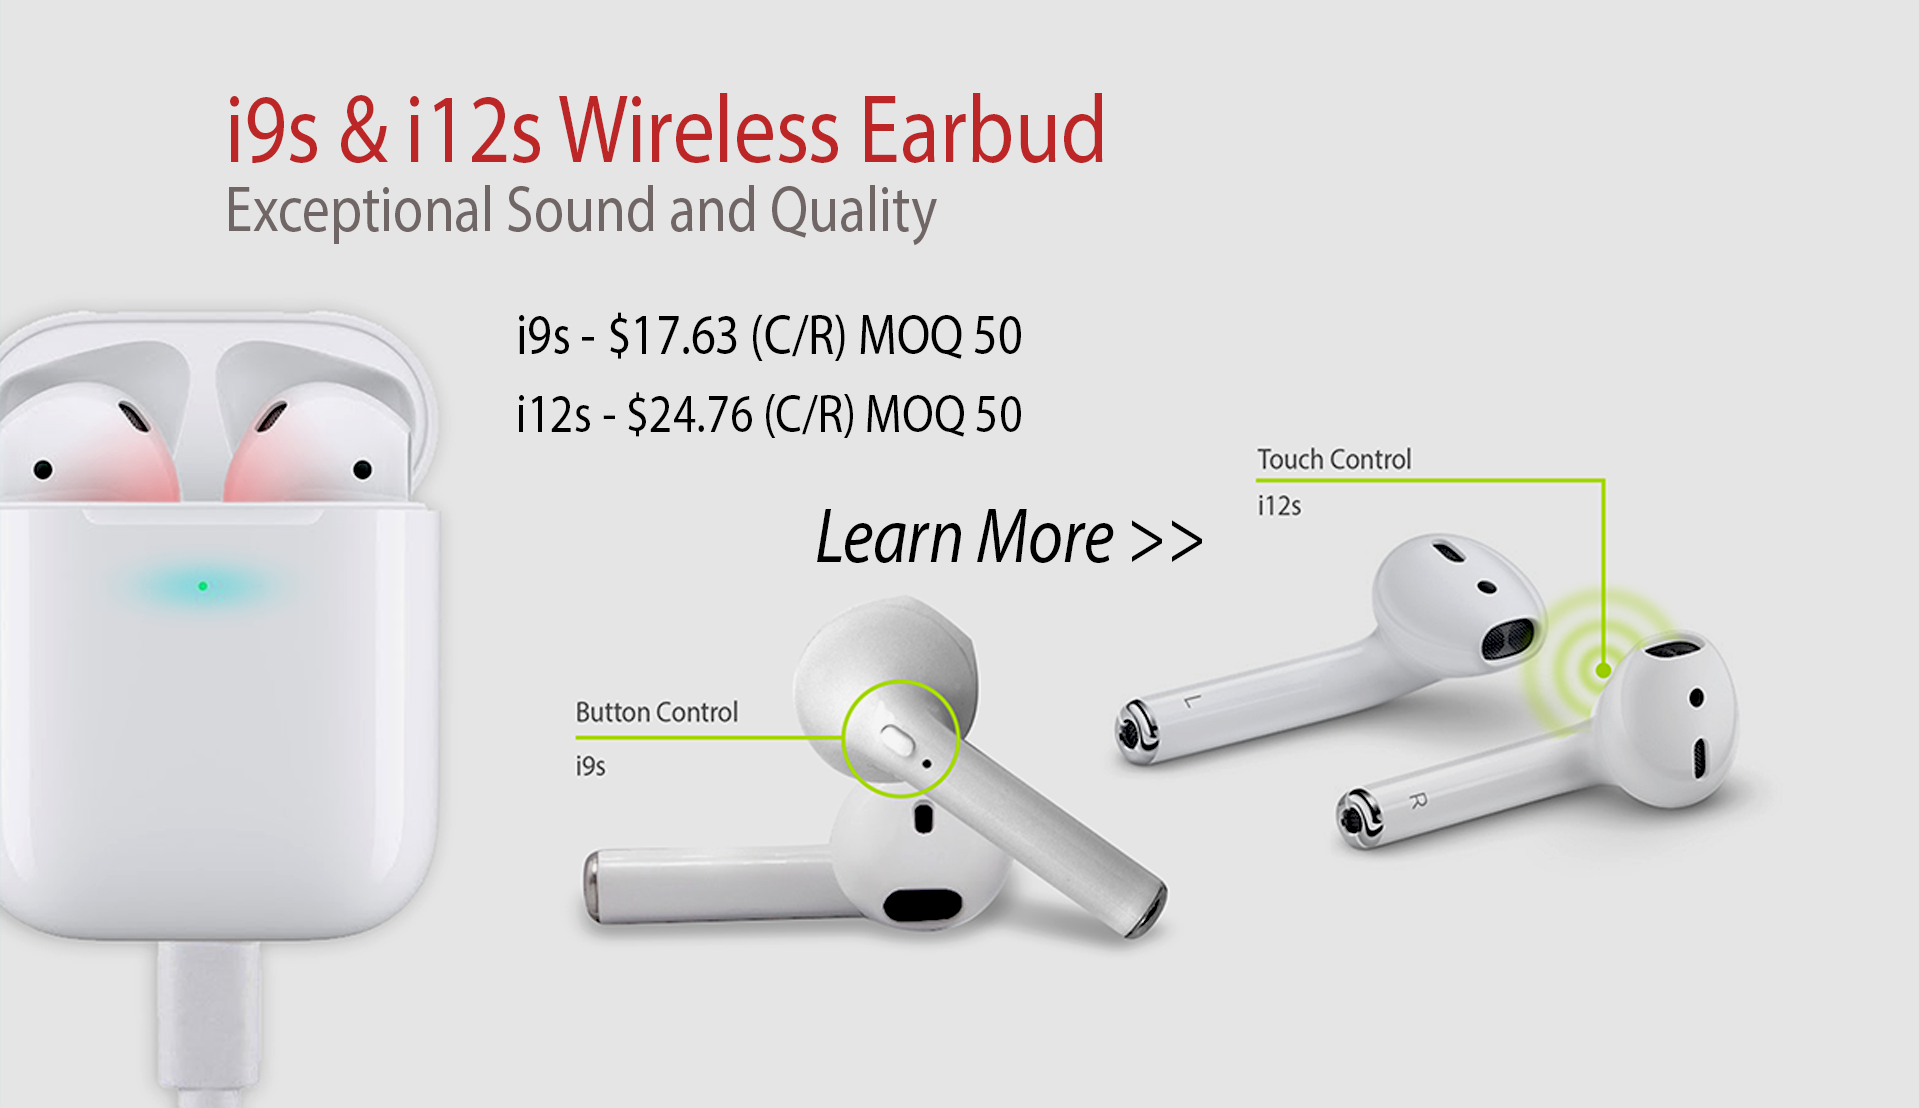 i9s and i12s Wireless Earbud